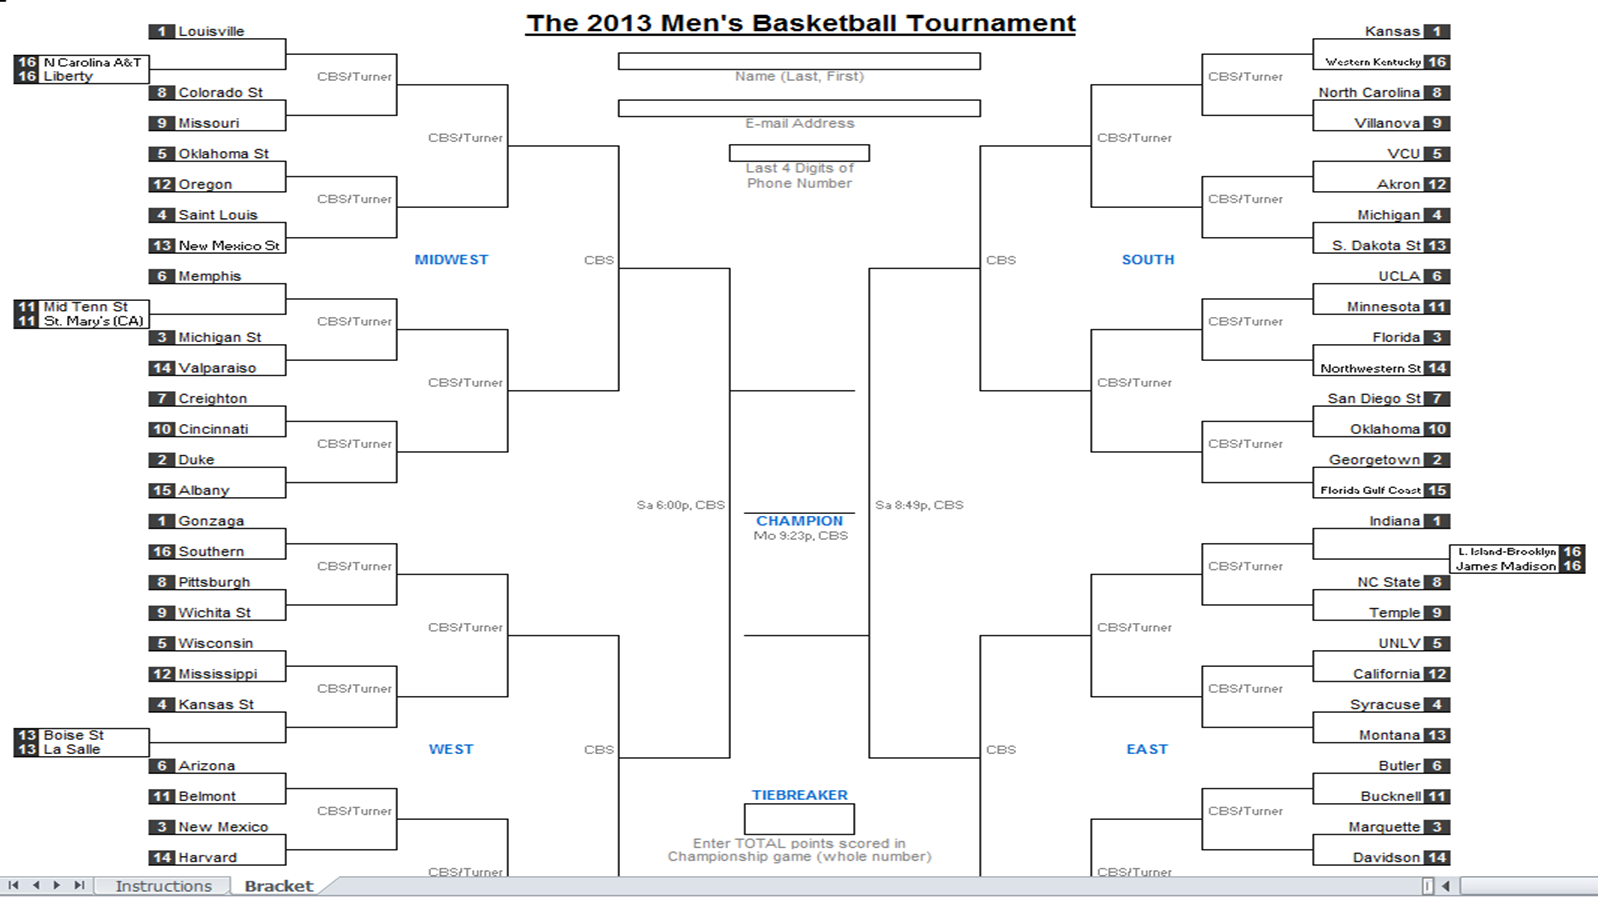 tournament spreadsheet template - excel spreadsheets help downloadable 2013 ncaa tournament